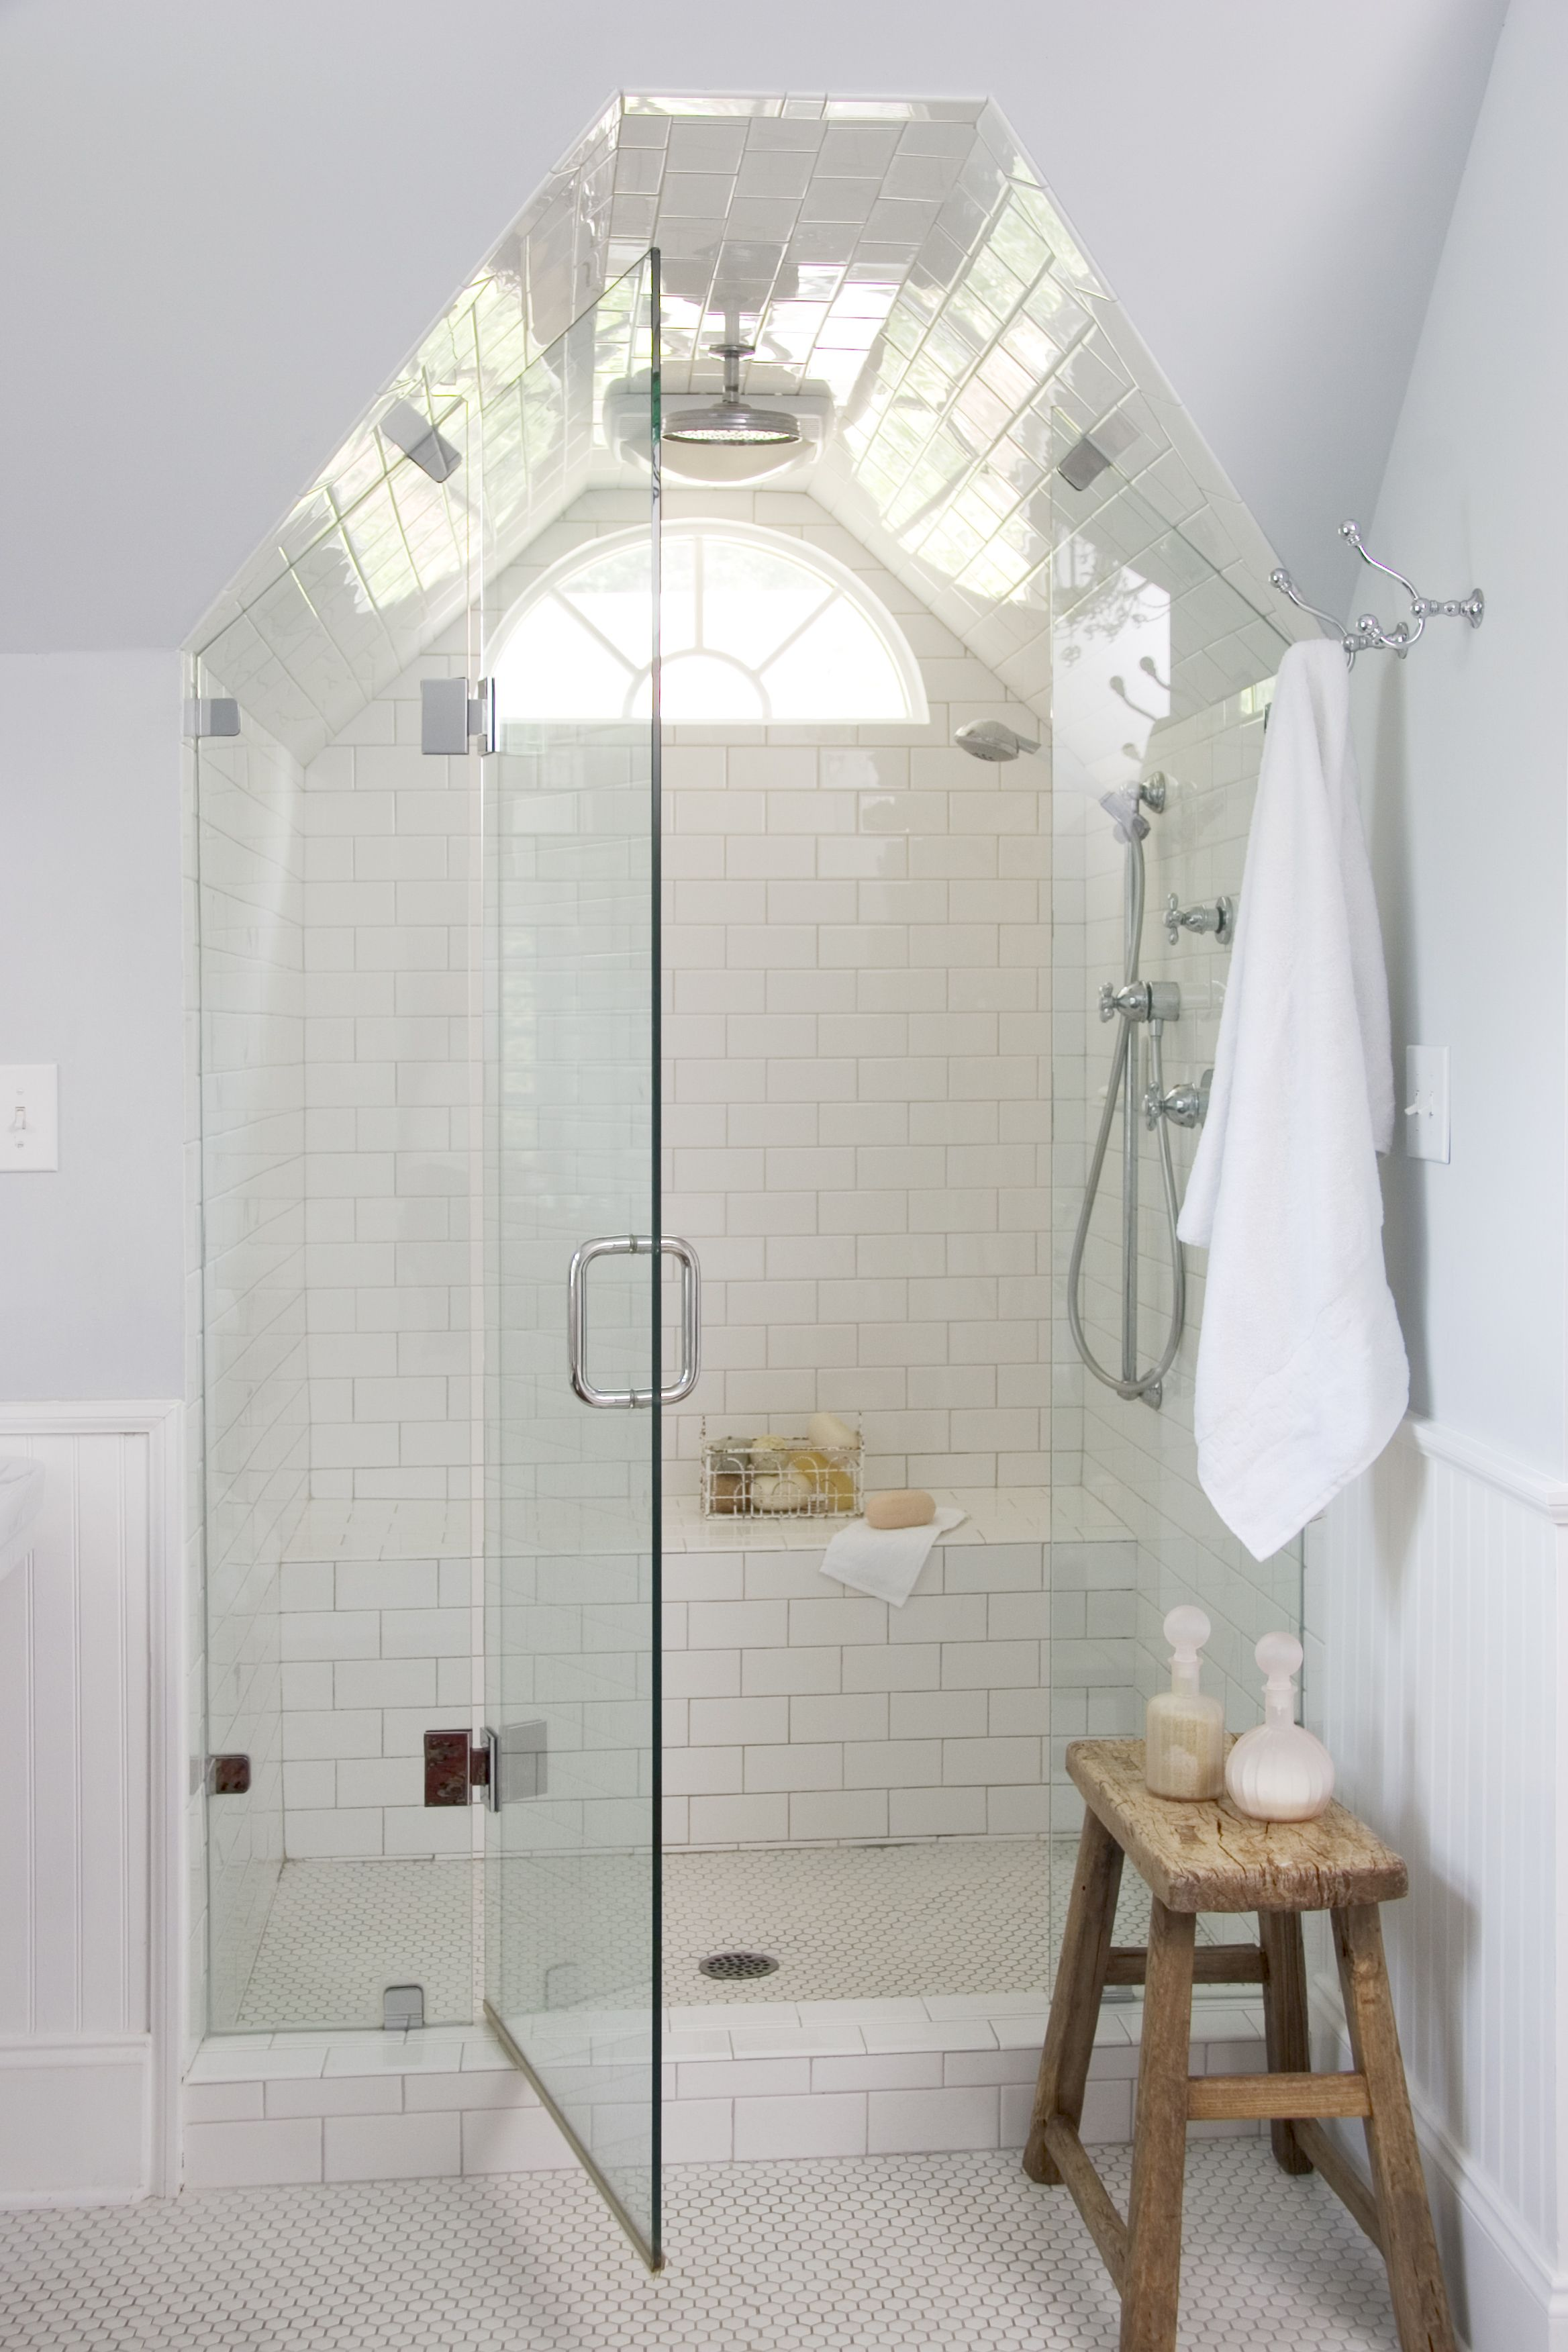 preparing for the holidays are your guest rooms ready attic i love the symmetry of a shower in the eves more